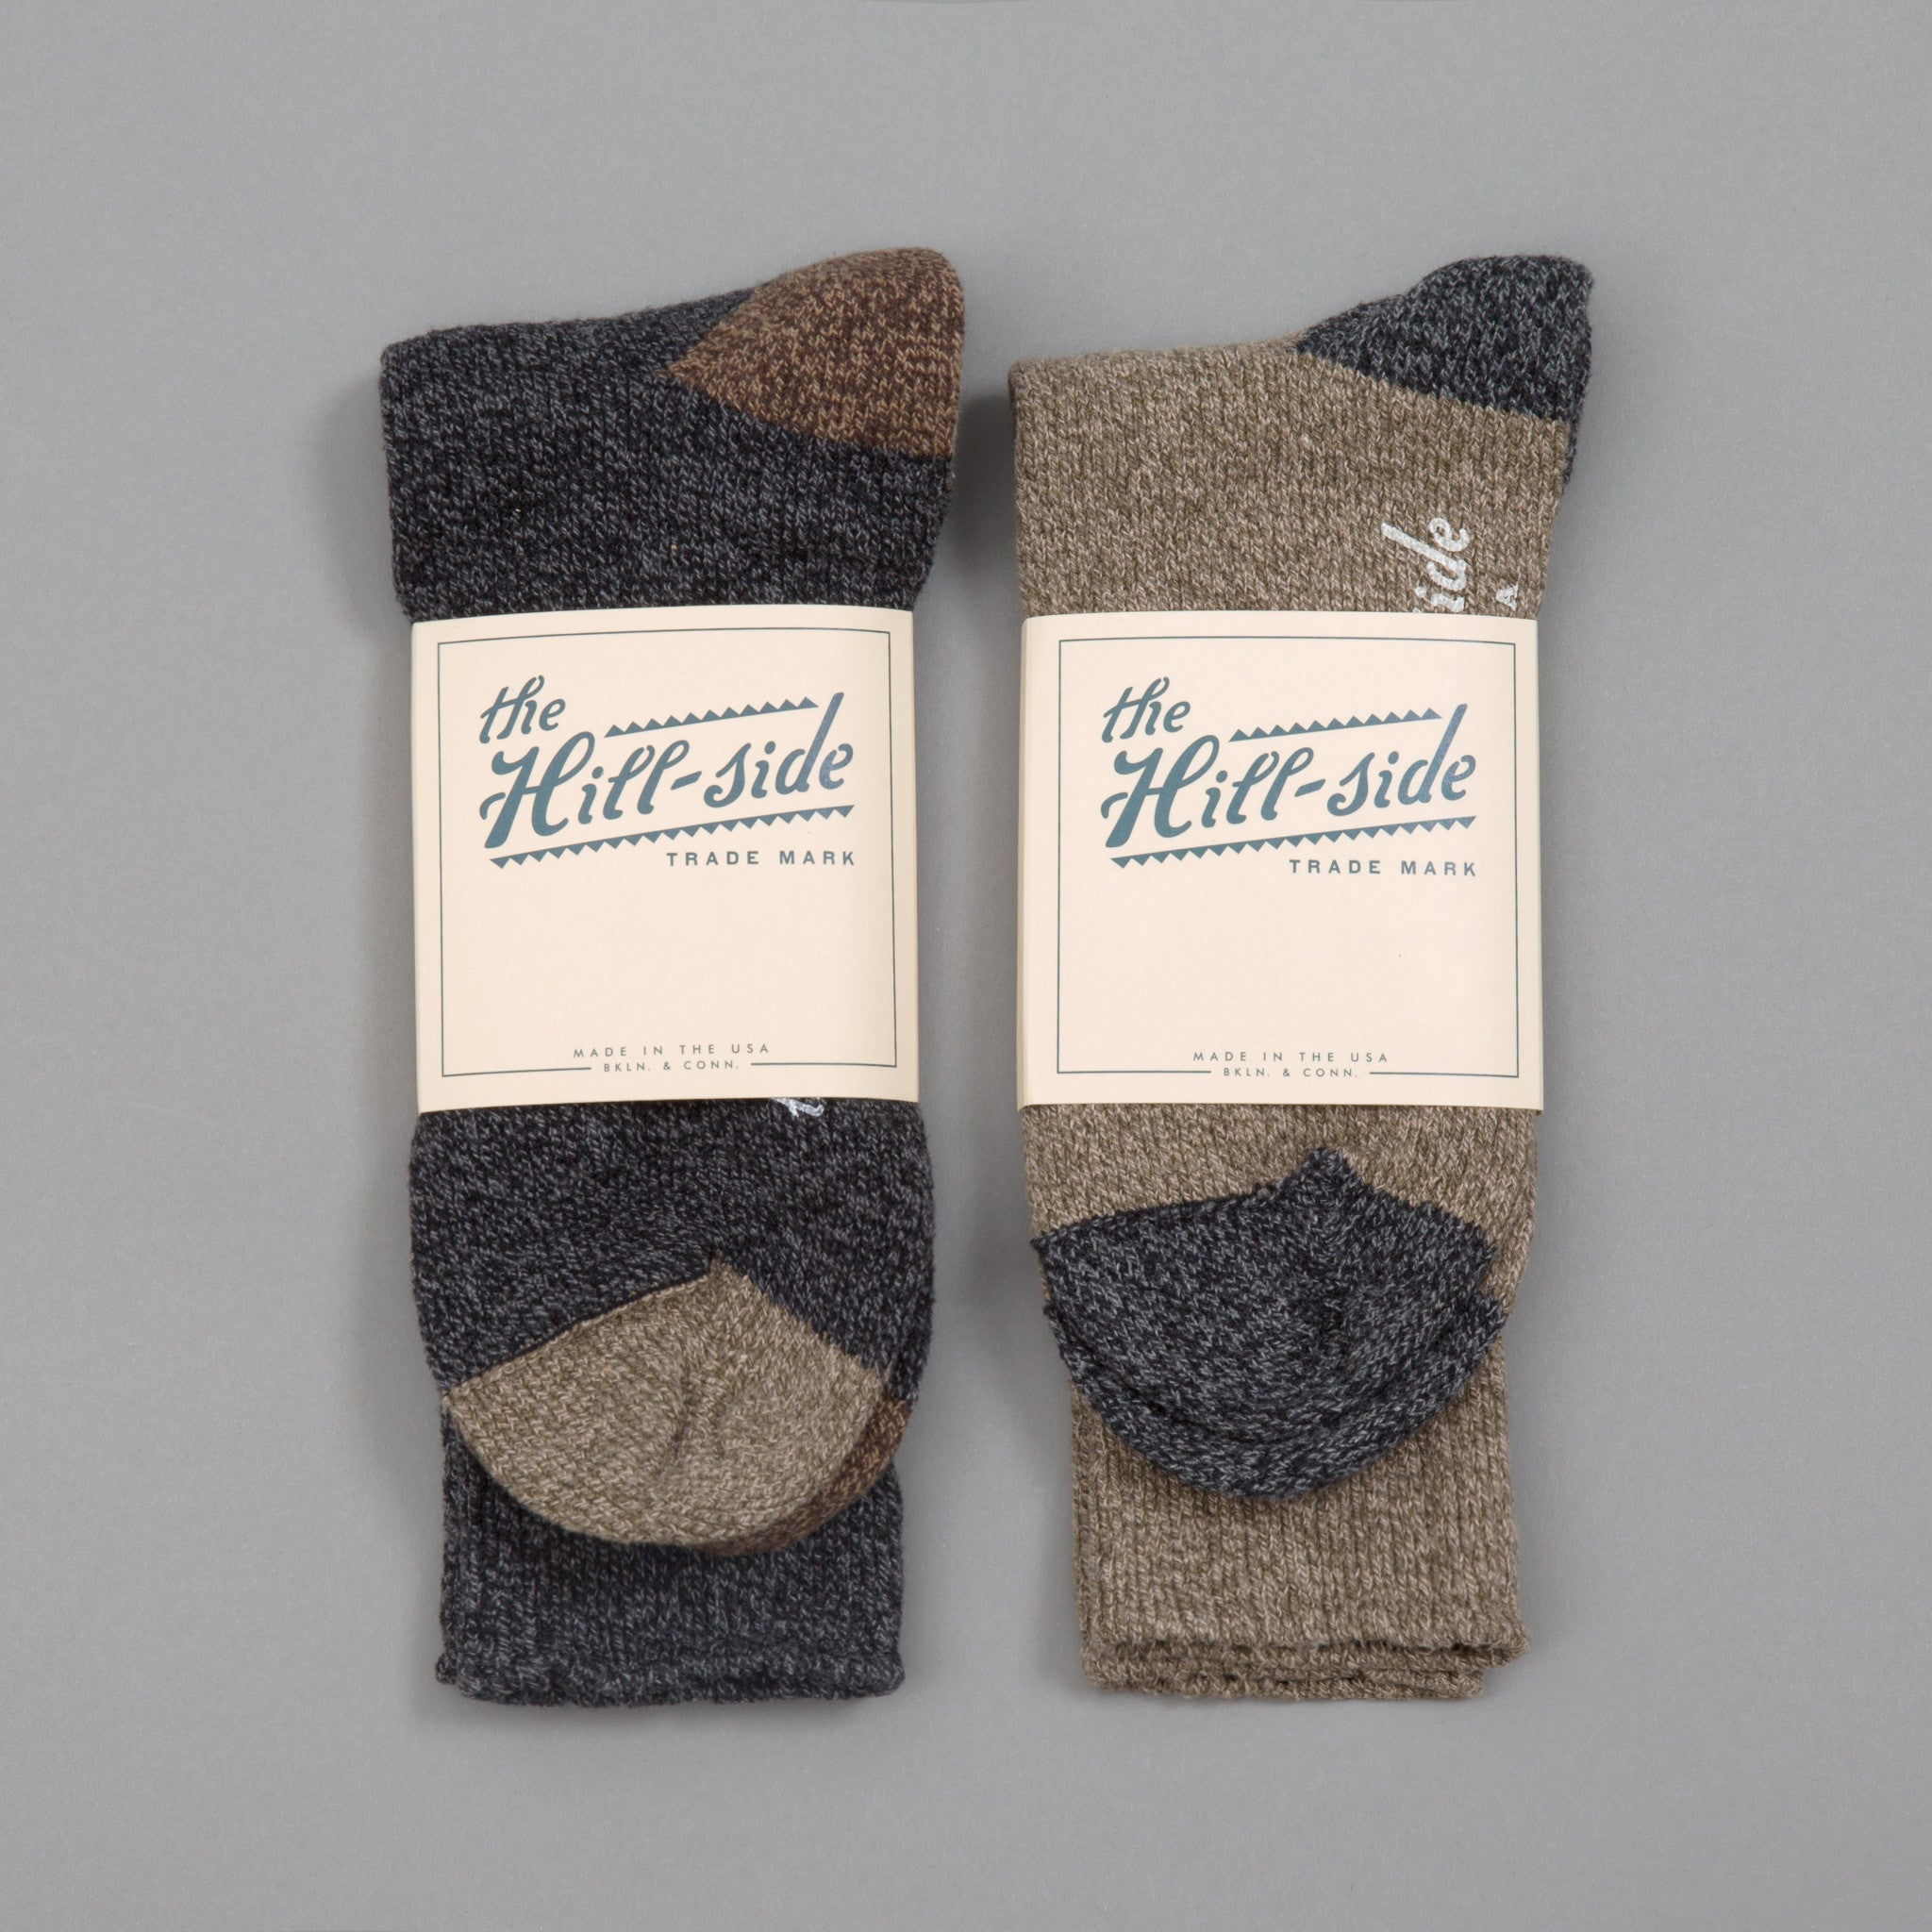 The Hill-Side Mixed 2-Pack Socks, Charcoal and Olive